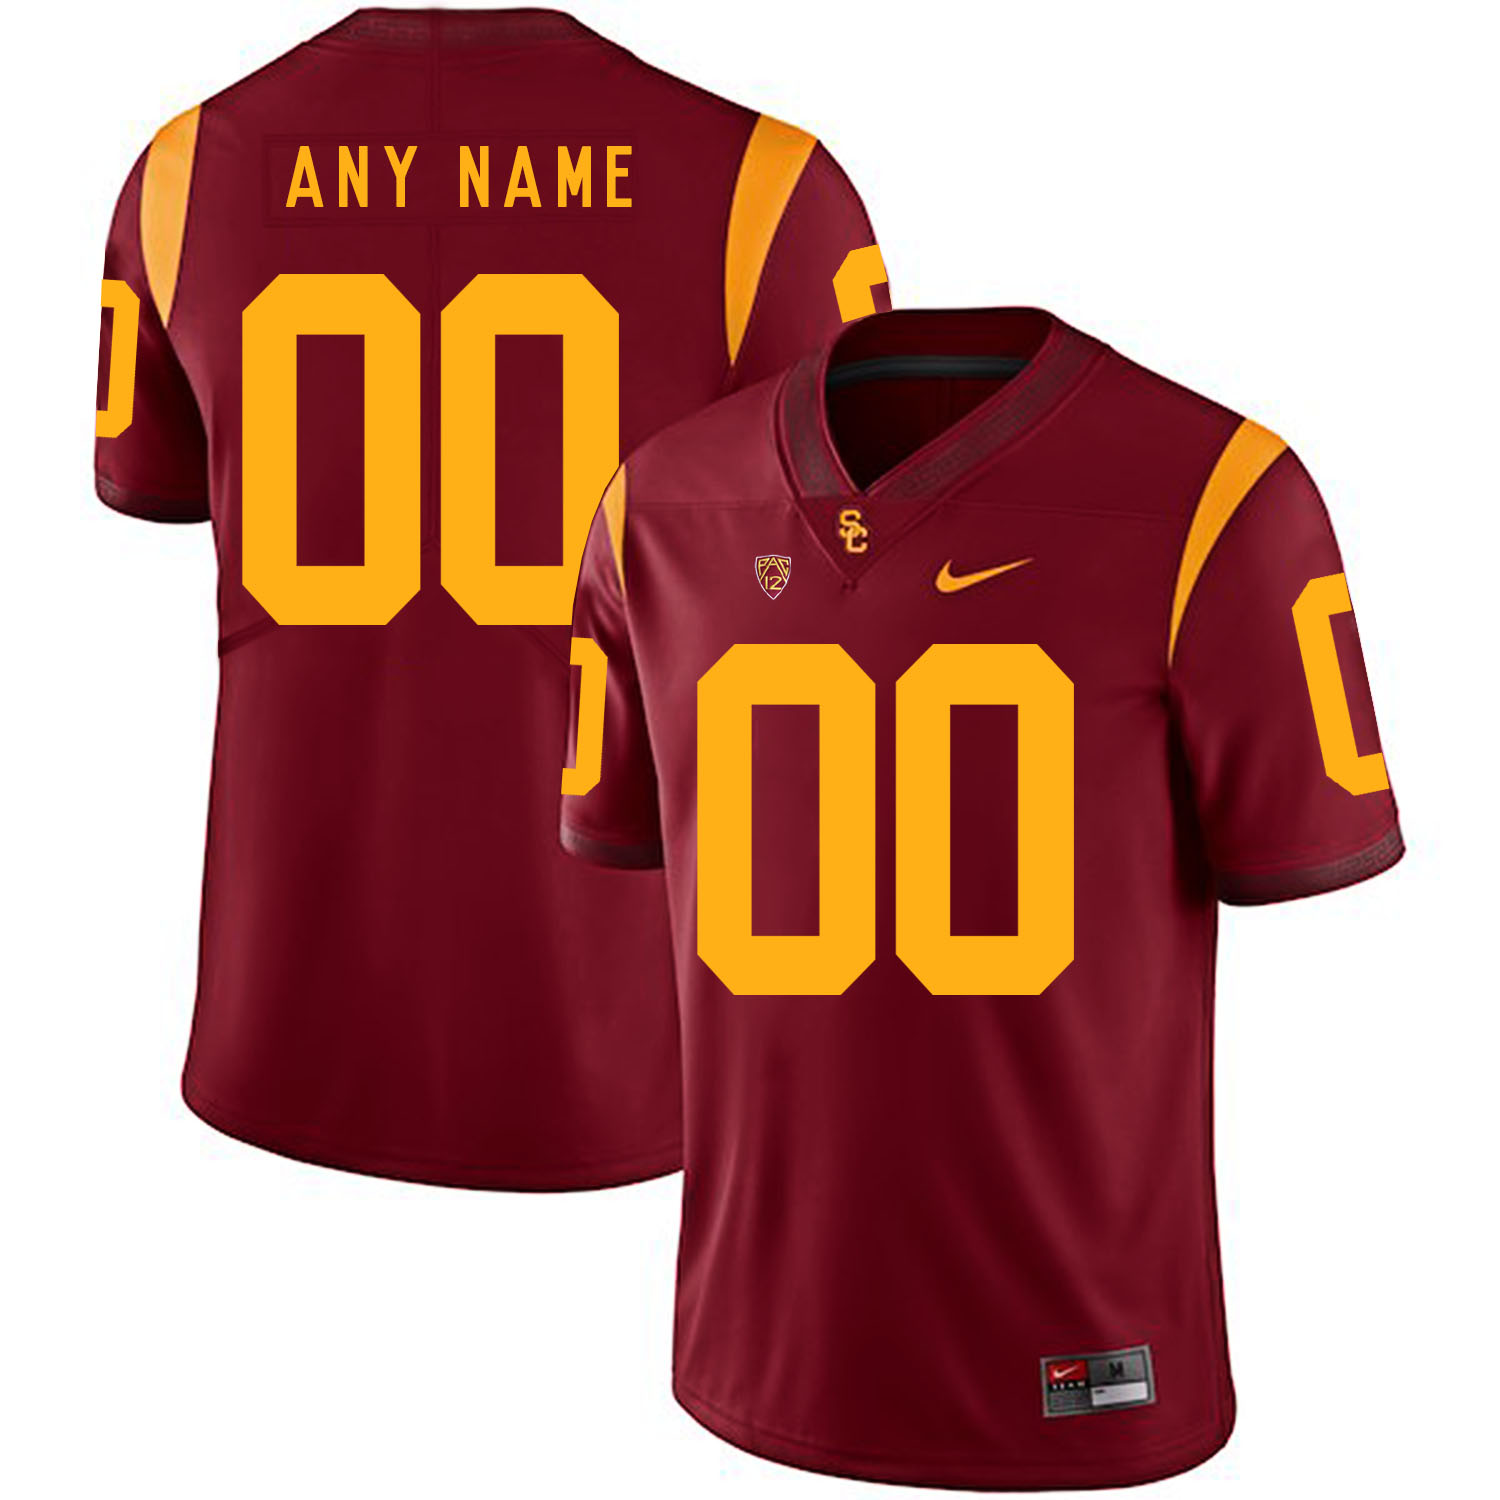 USC Trojans Red Men's Customized College Football Jersey